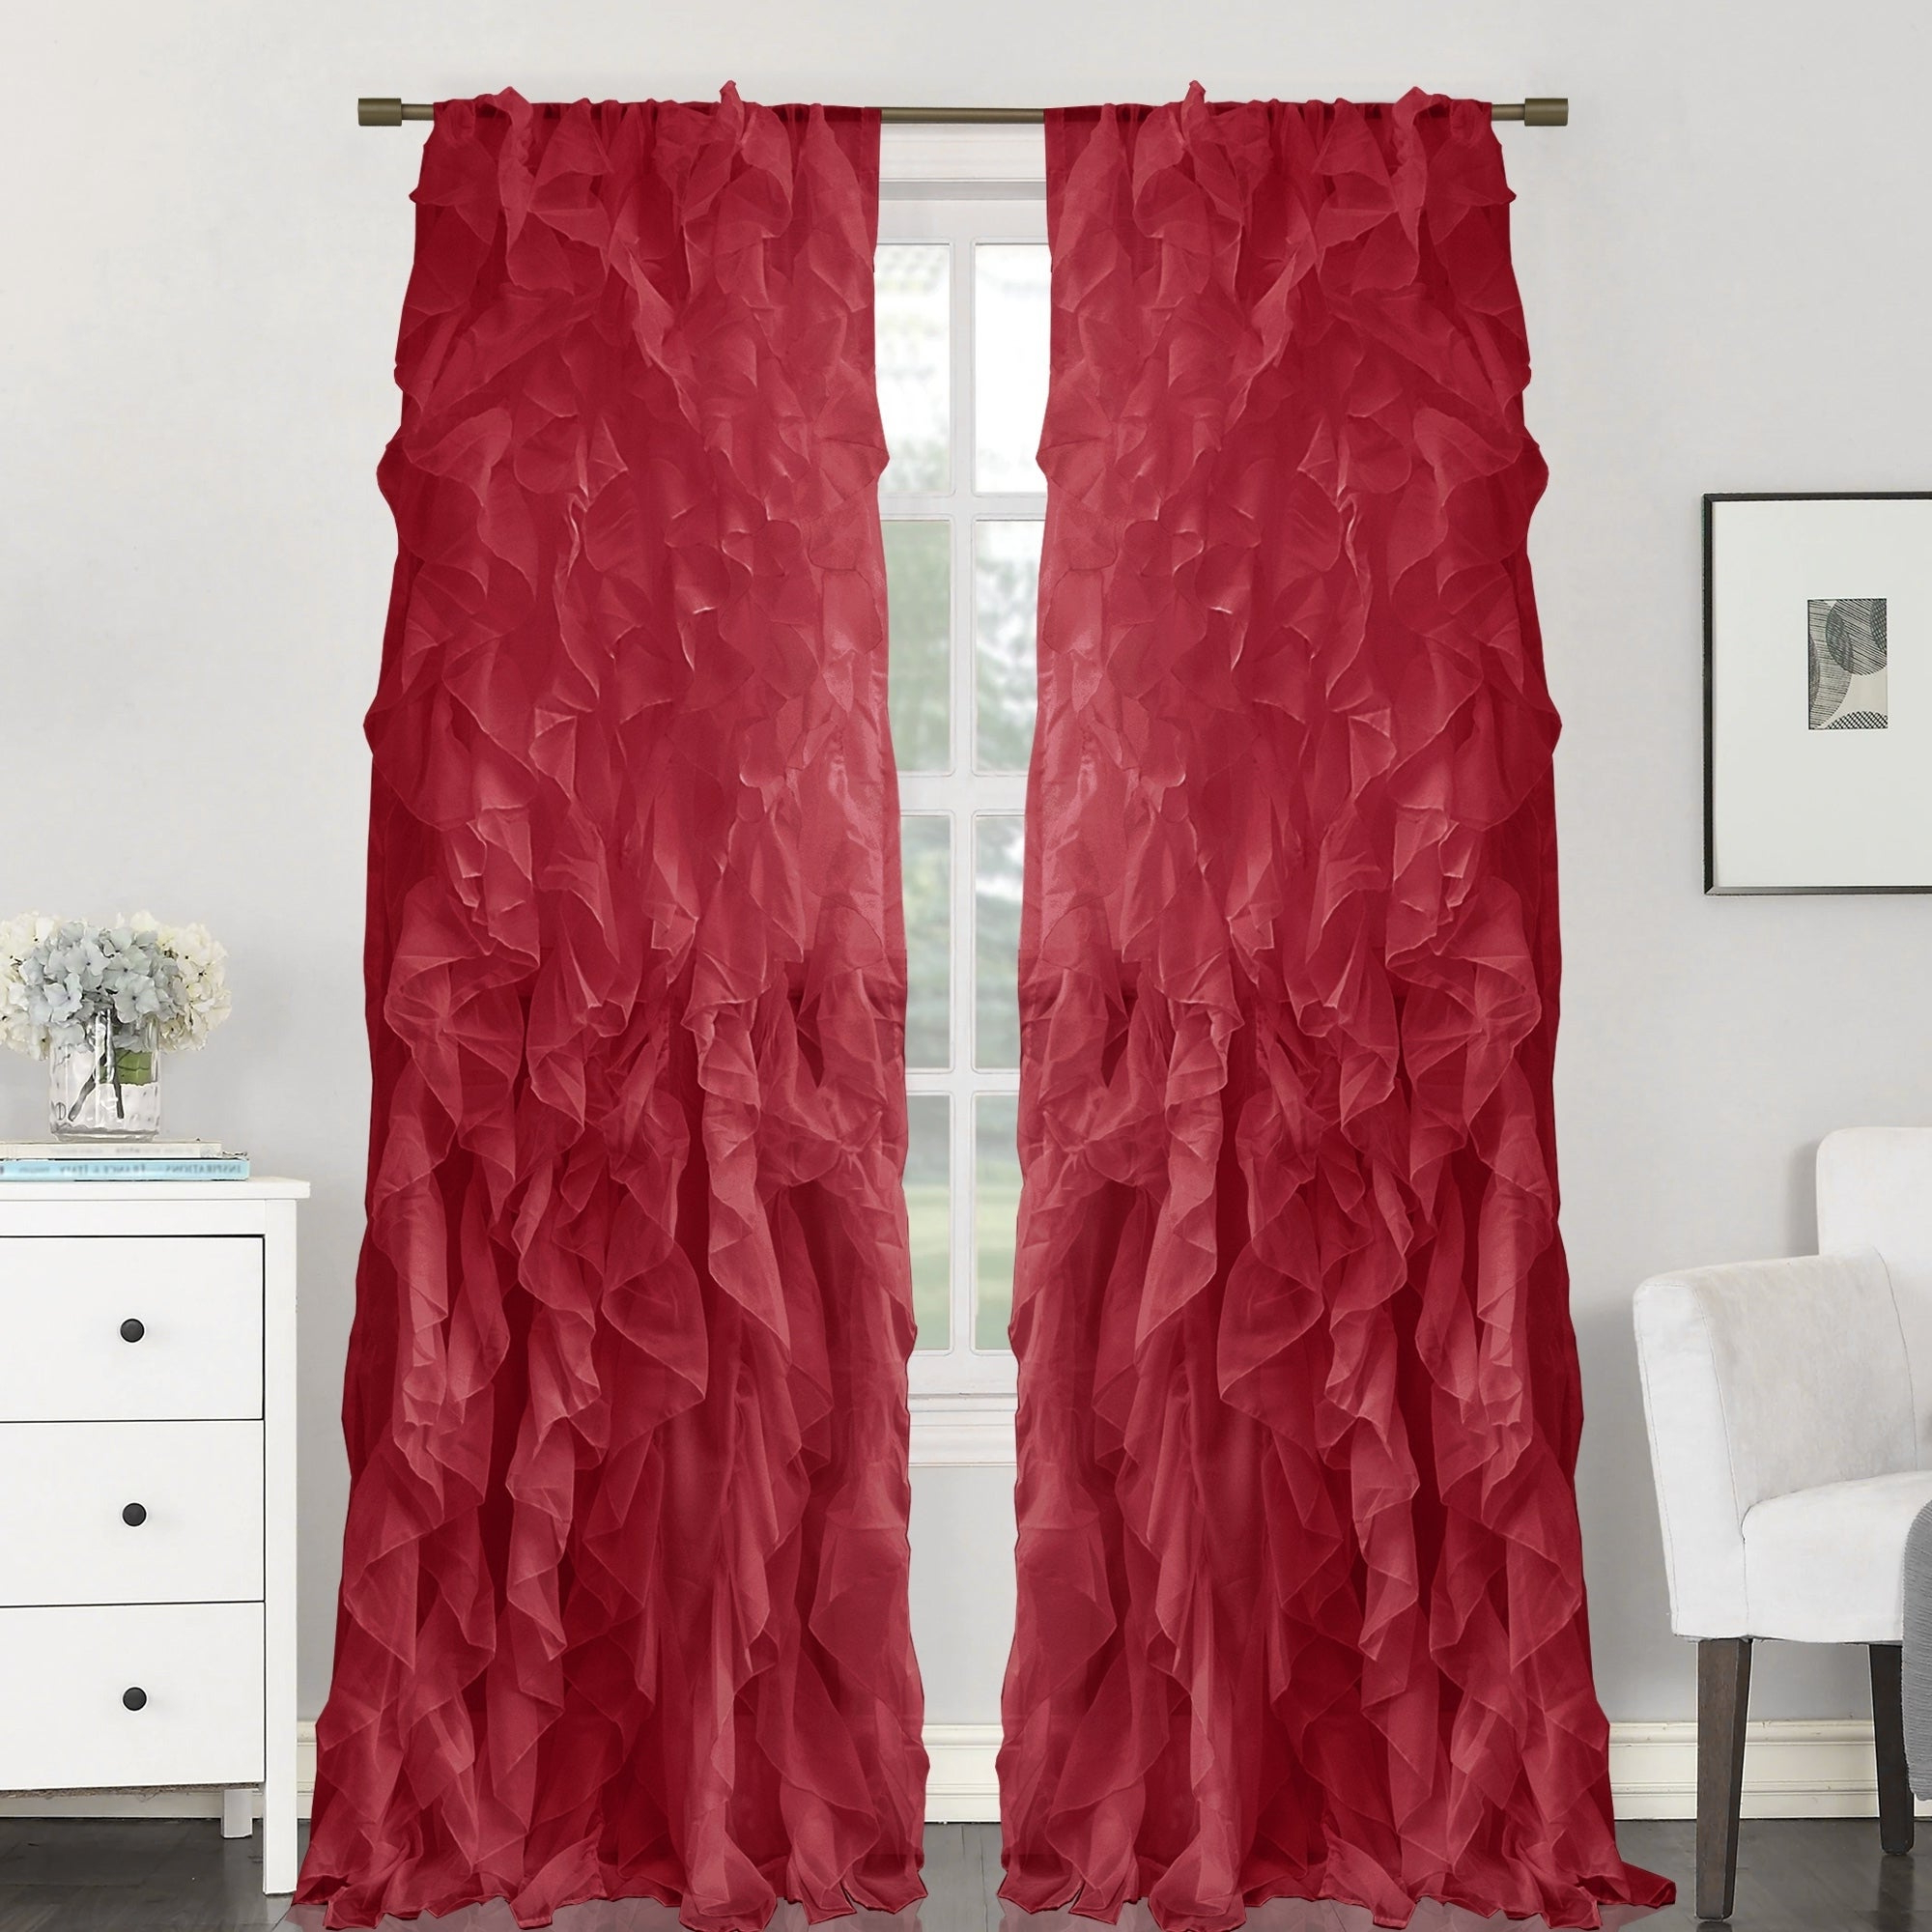 "Sheer Voile Waterfall Ruffled Tier Single Curtain Panels Throughout Well Known Sweet Home Collection Sheer Voile Waterfall Ruffled Tier 84 Inch Single  Curtain Panel – 84"" Long X 50"" Wide (View 15 of 20)"